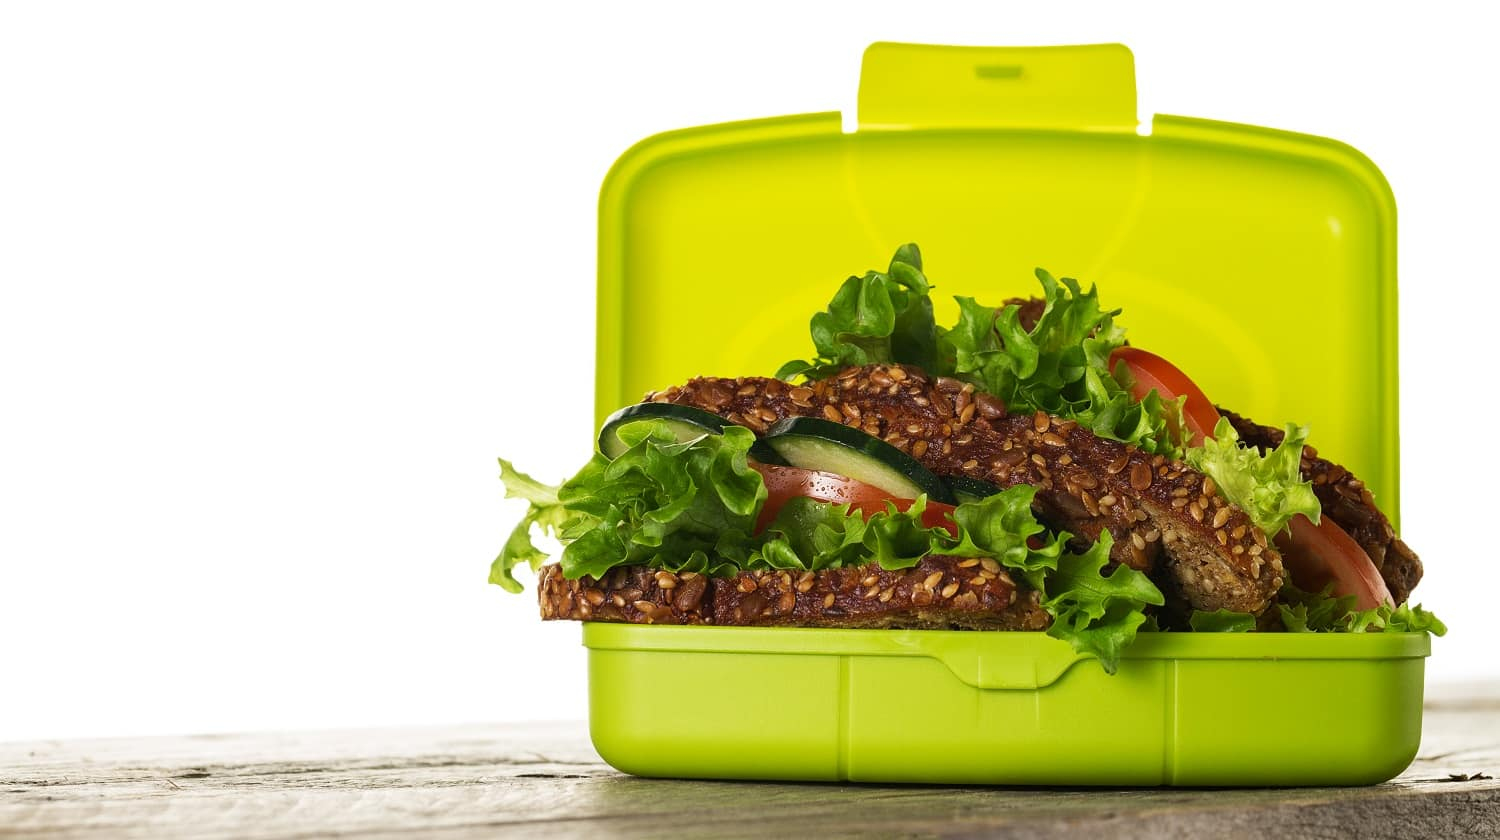 Tasty Healthy Vegetarian Vegan Sandwich in Lunch Box on Wooden Table on White Isolated Background. Horizontal. Copy Space.